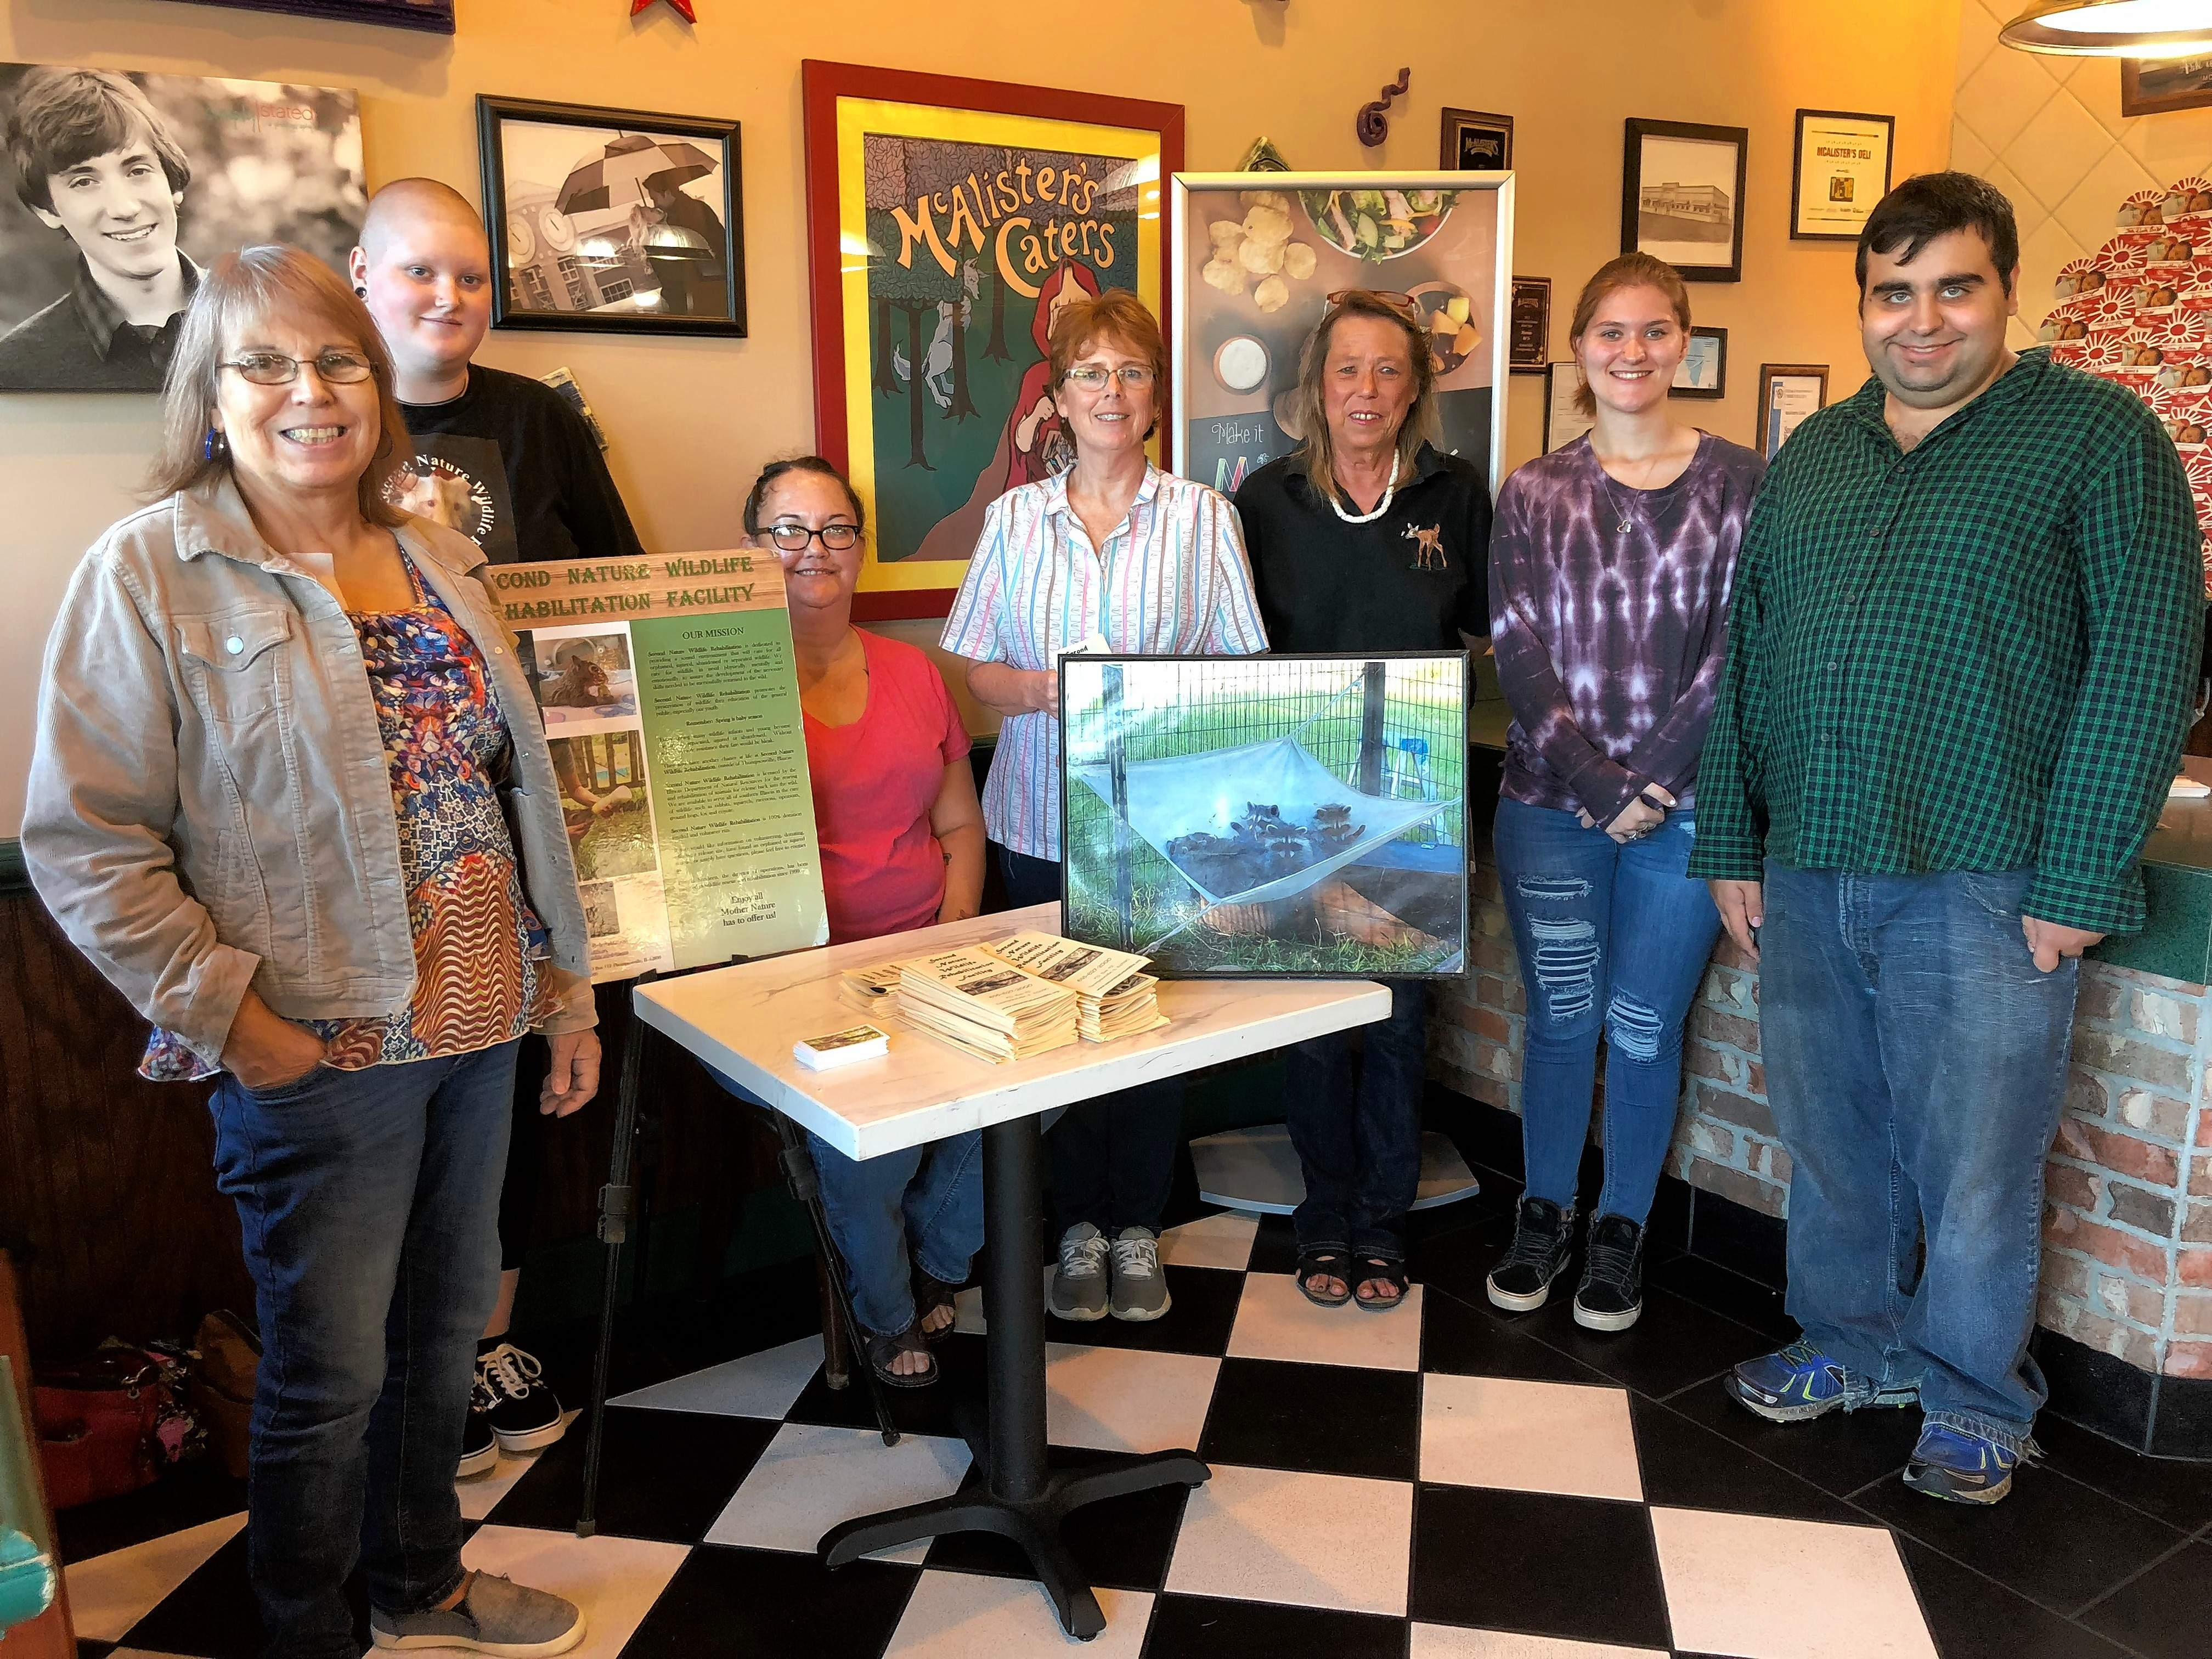 A group of volunteers from across southern Illinois came together to help raise funds for Second Nature Wildlife Rehabilitation on Monday evening. From left are Gail Venegas, Violet Pearce, Chelsea Meisner, Amy Langle, Pam Sundeen, McKenzie Newsome, and Neil Venegas worked a shift at the Marion McCallister's to earn donations.